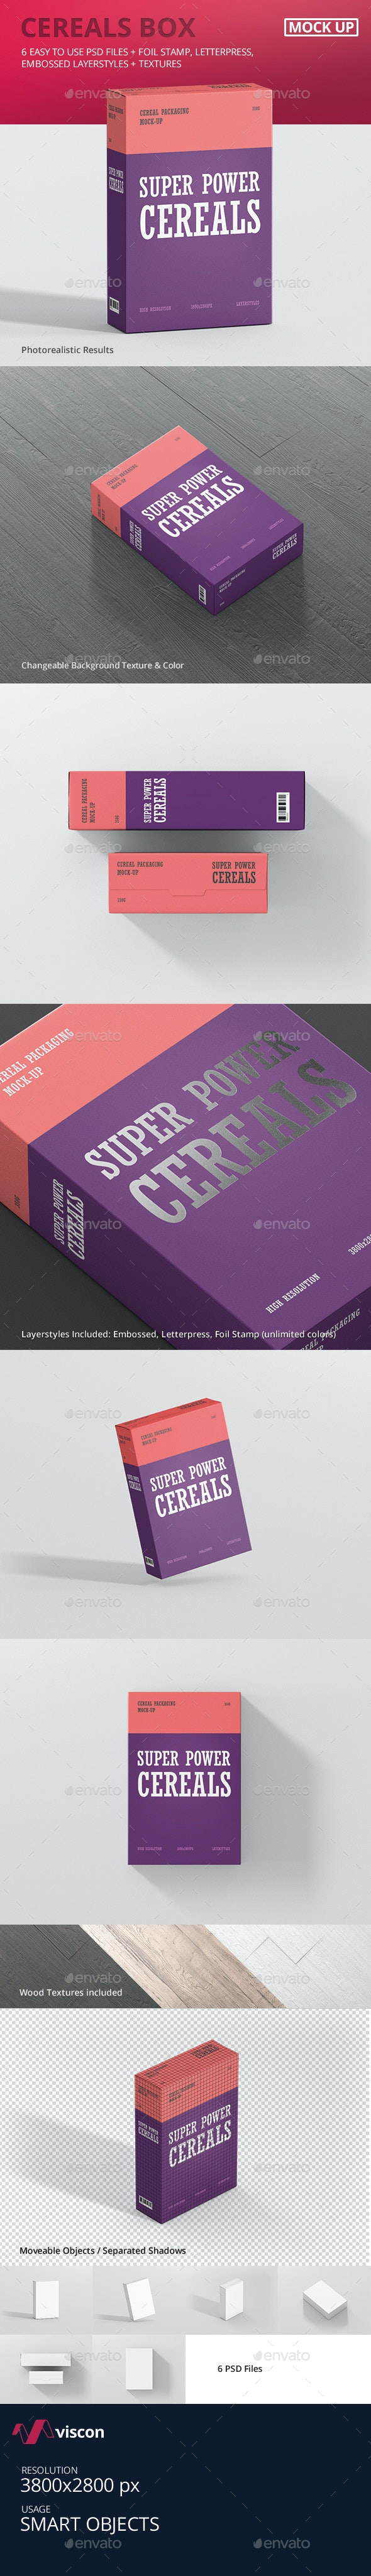 Cereals Box Mockup - Food and Drink Packaging